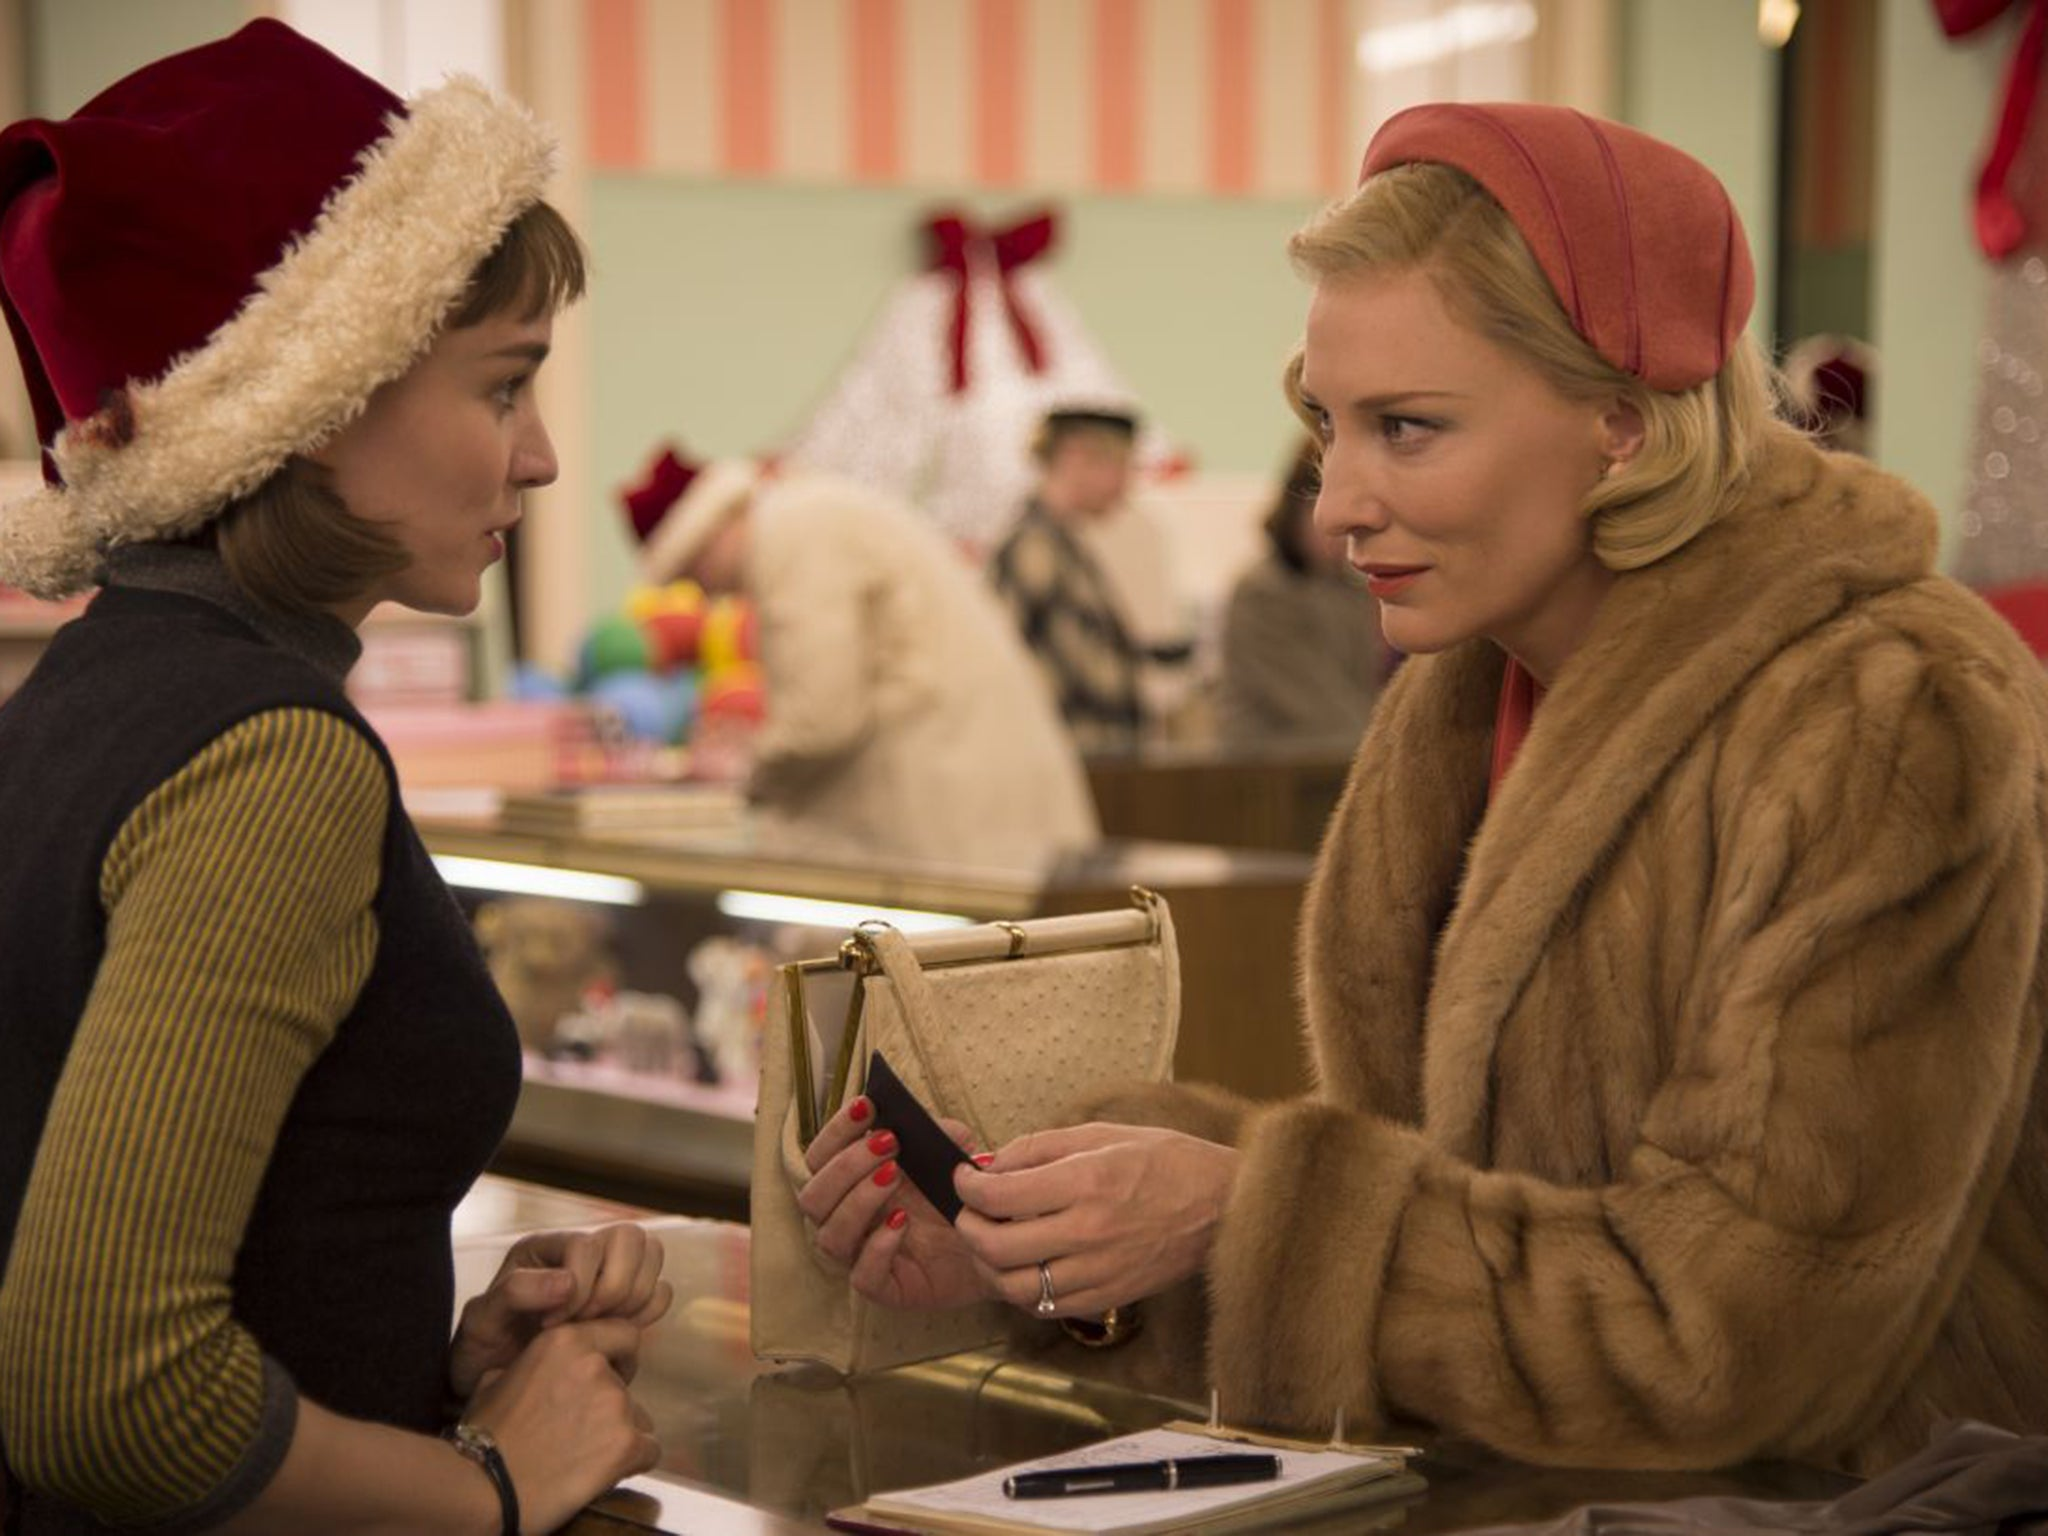 MOTHER AND SON FORBIDEN LOVE  Carol, film review: Cate Blanchett stars in a moving tale of forbidden love  | The Independent